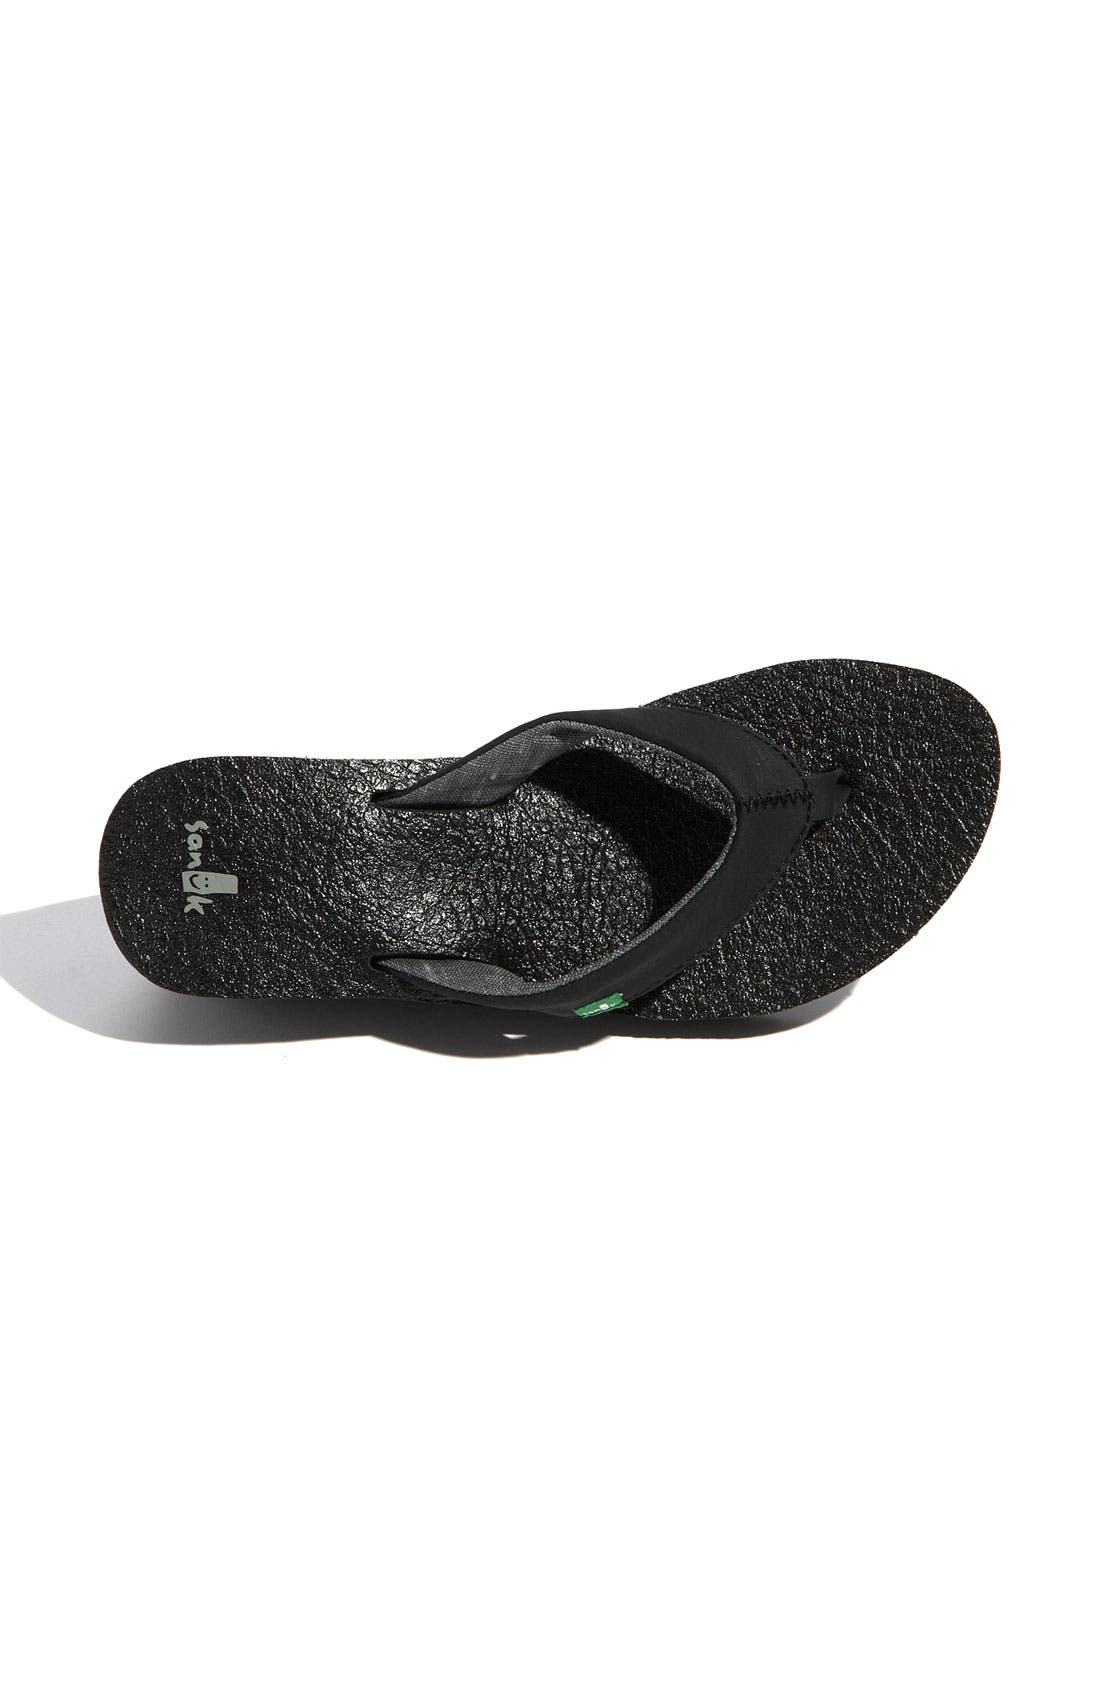 'Yoga Mat' Wedge Flip Flop,                             Alternate thumbnail 3, color,                             Black